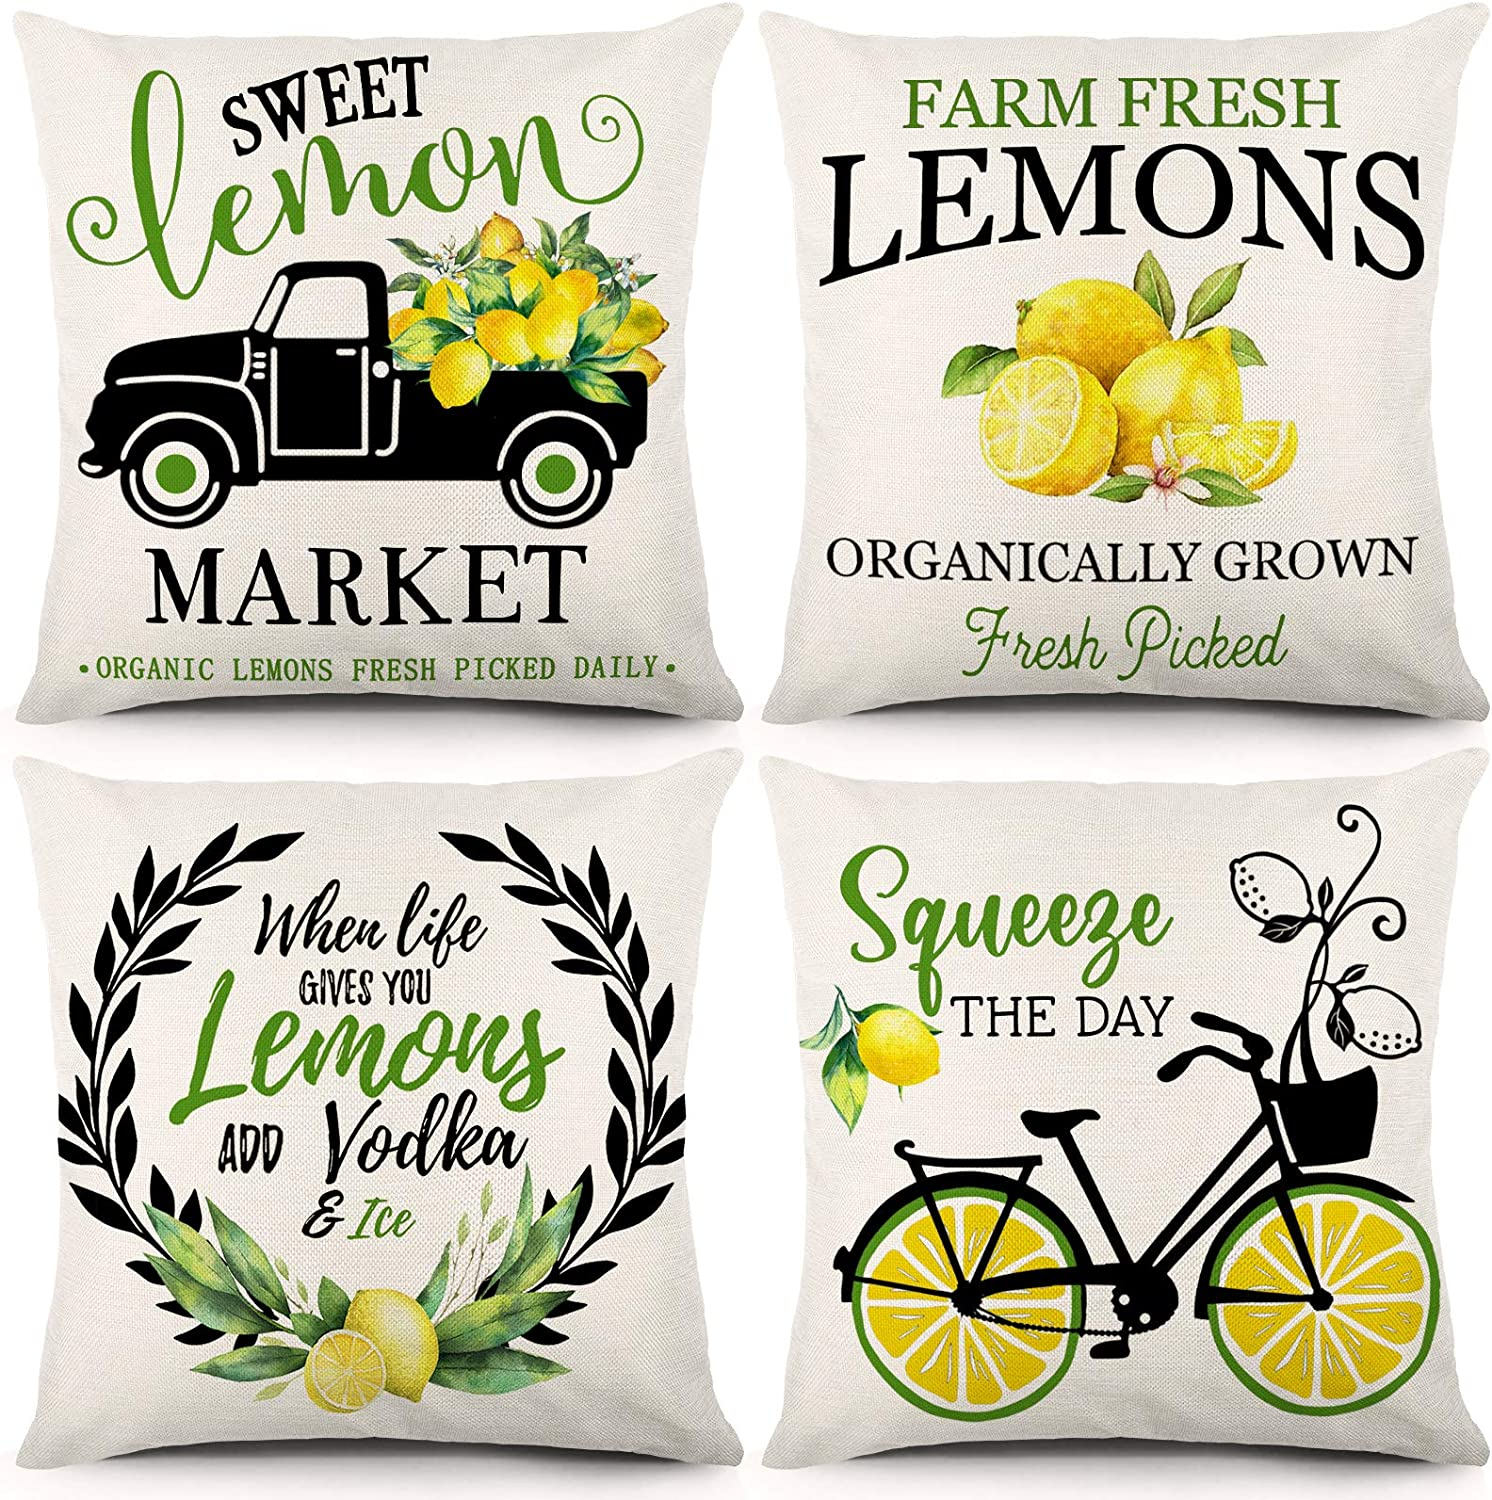 CDWERD Lemon Throw Pillow Covers 18 x 18 Inch Set of 4 Spring Summer Decorations Farmhouse Green and Yellow Sweet Lemon Pillowcase Linen Cushion Case for Couch or Home Decor